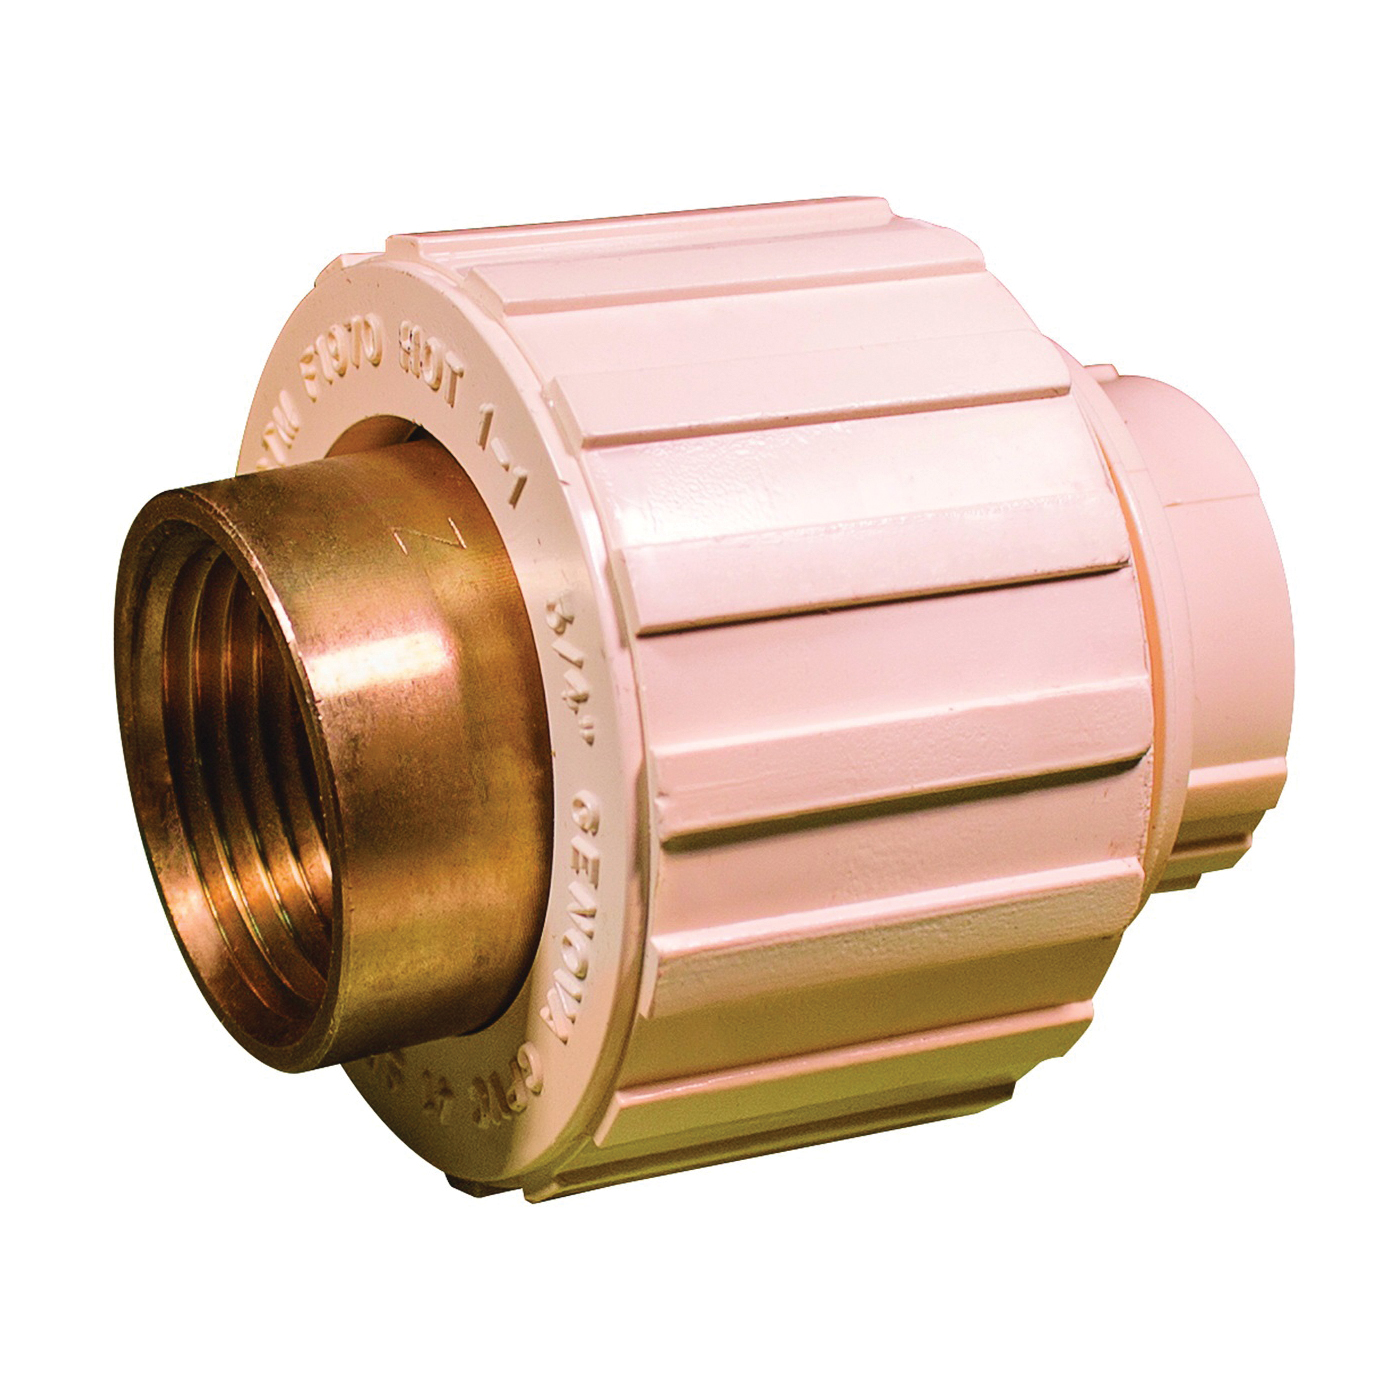 Picture of GENOVA 500 Series 53040Z Transition Union, 3/4 in, Slip Joint x FIP, 100 psi Pressure